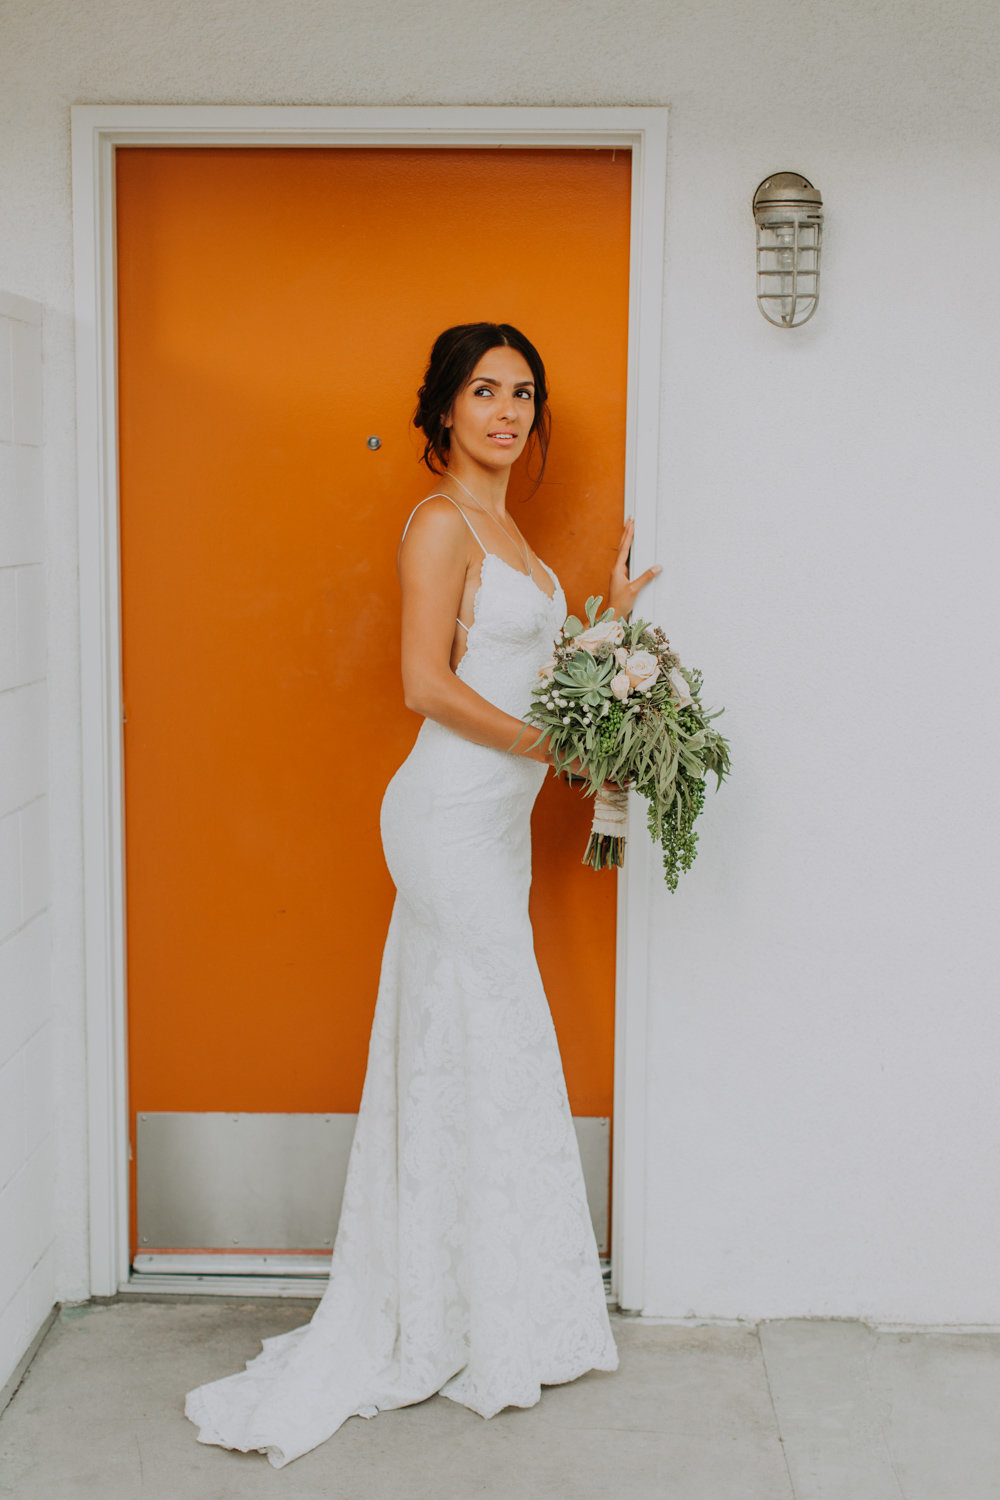 Brianna Broyles_Palm Springs Wedding Photographer_Ace Hotel Wedding_Ace Hotel Palm Springs-29